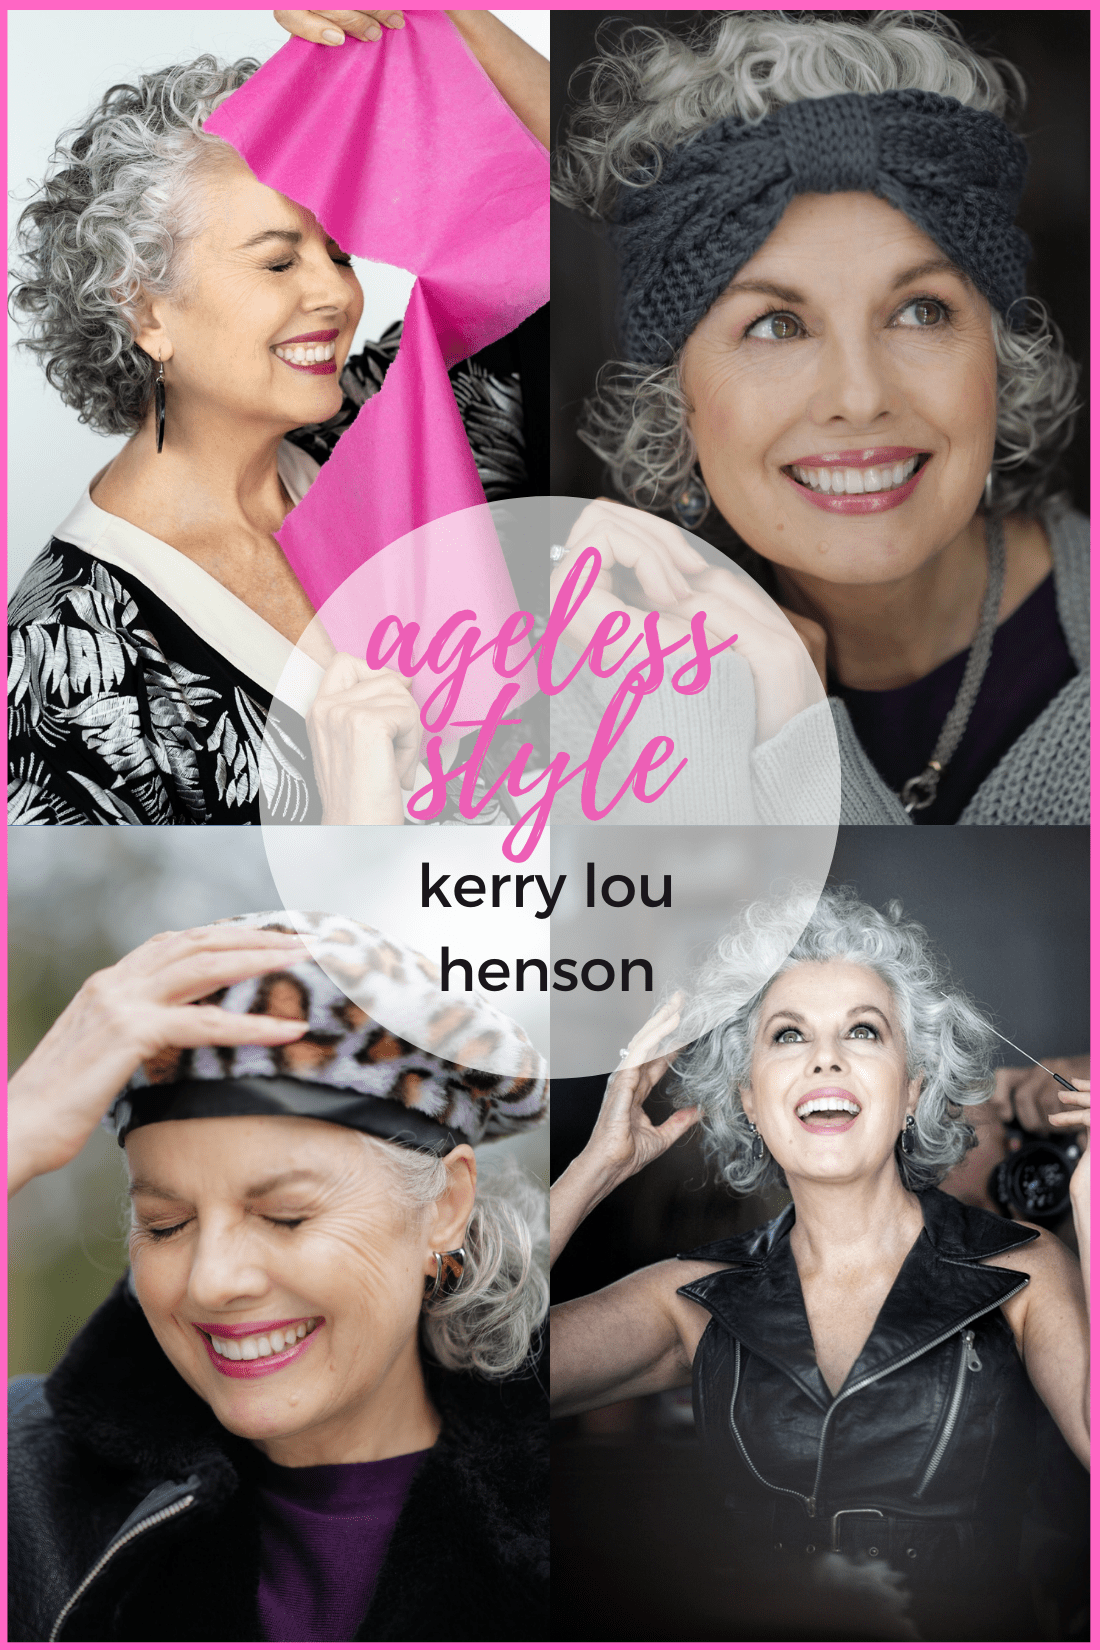 Ageless Style Kerry Lou Henson on Cindy Hattersley's blog for Ageless Style